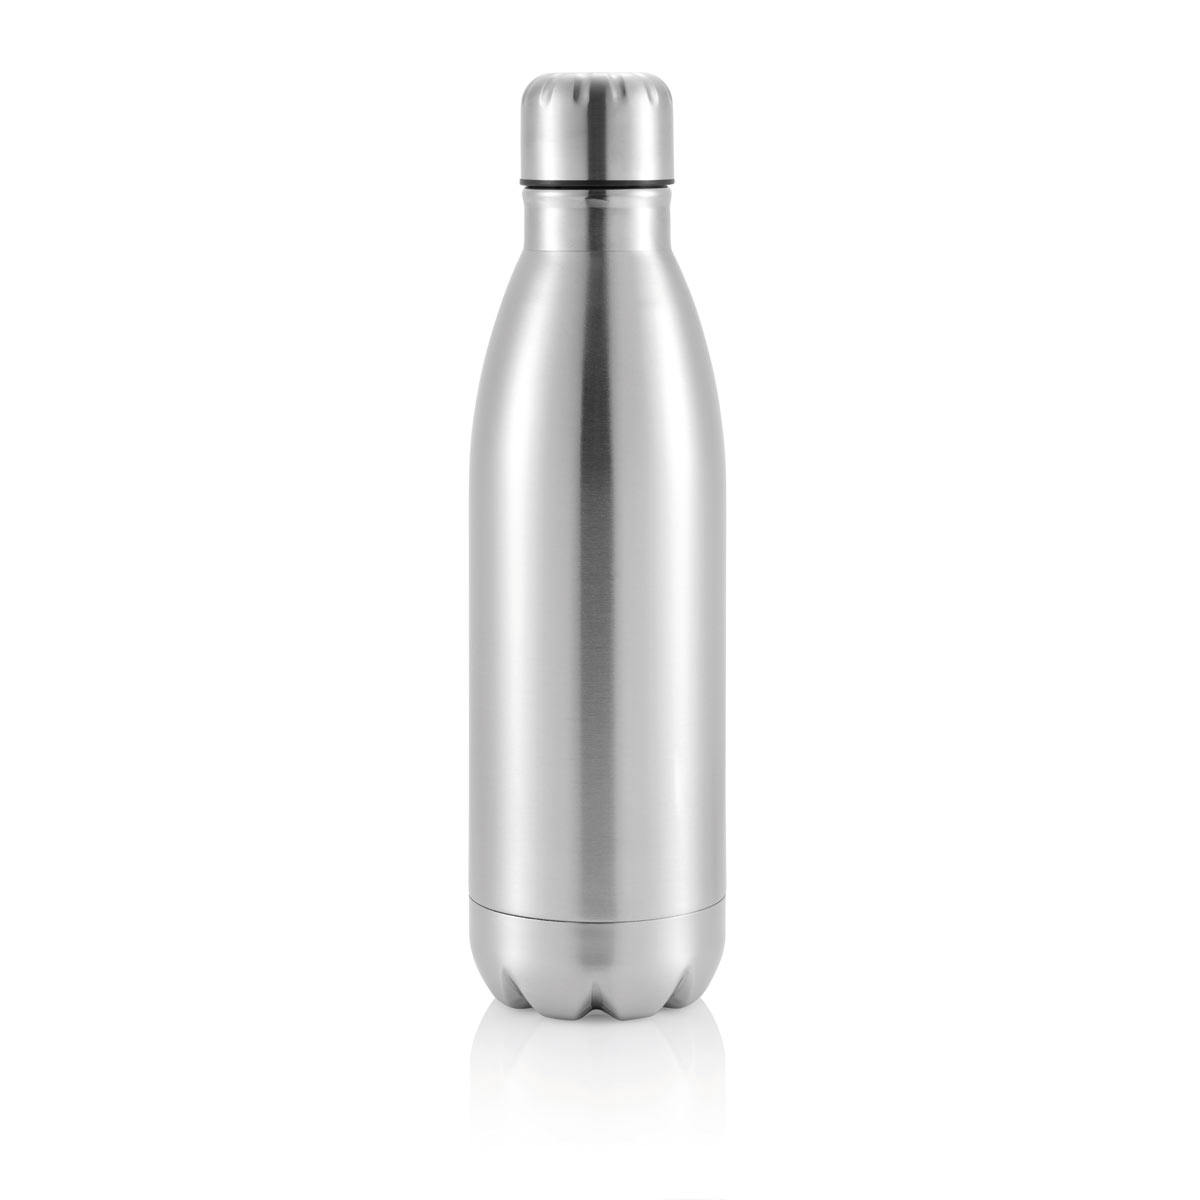 Boite Isotherme Repas Chaud Longue Durée Thermos Bouteille Isotherme Inox